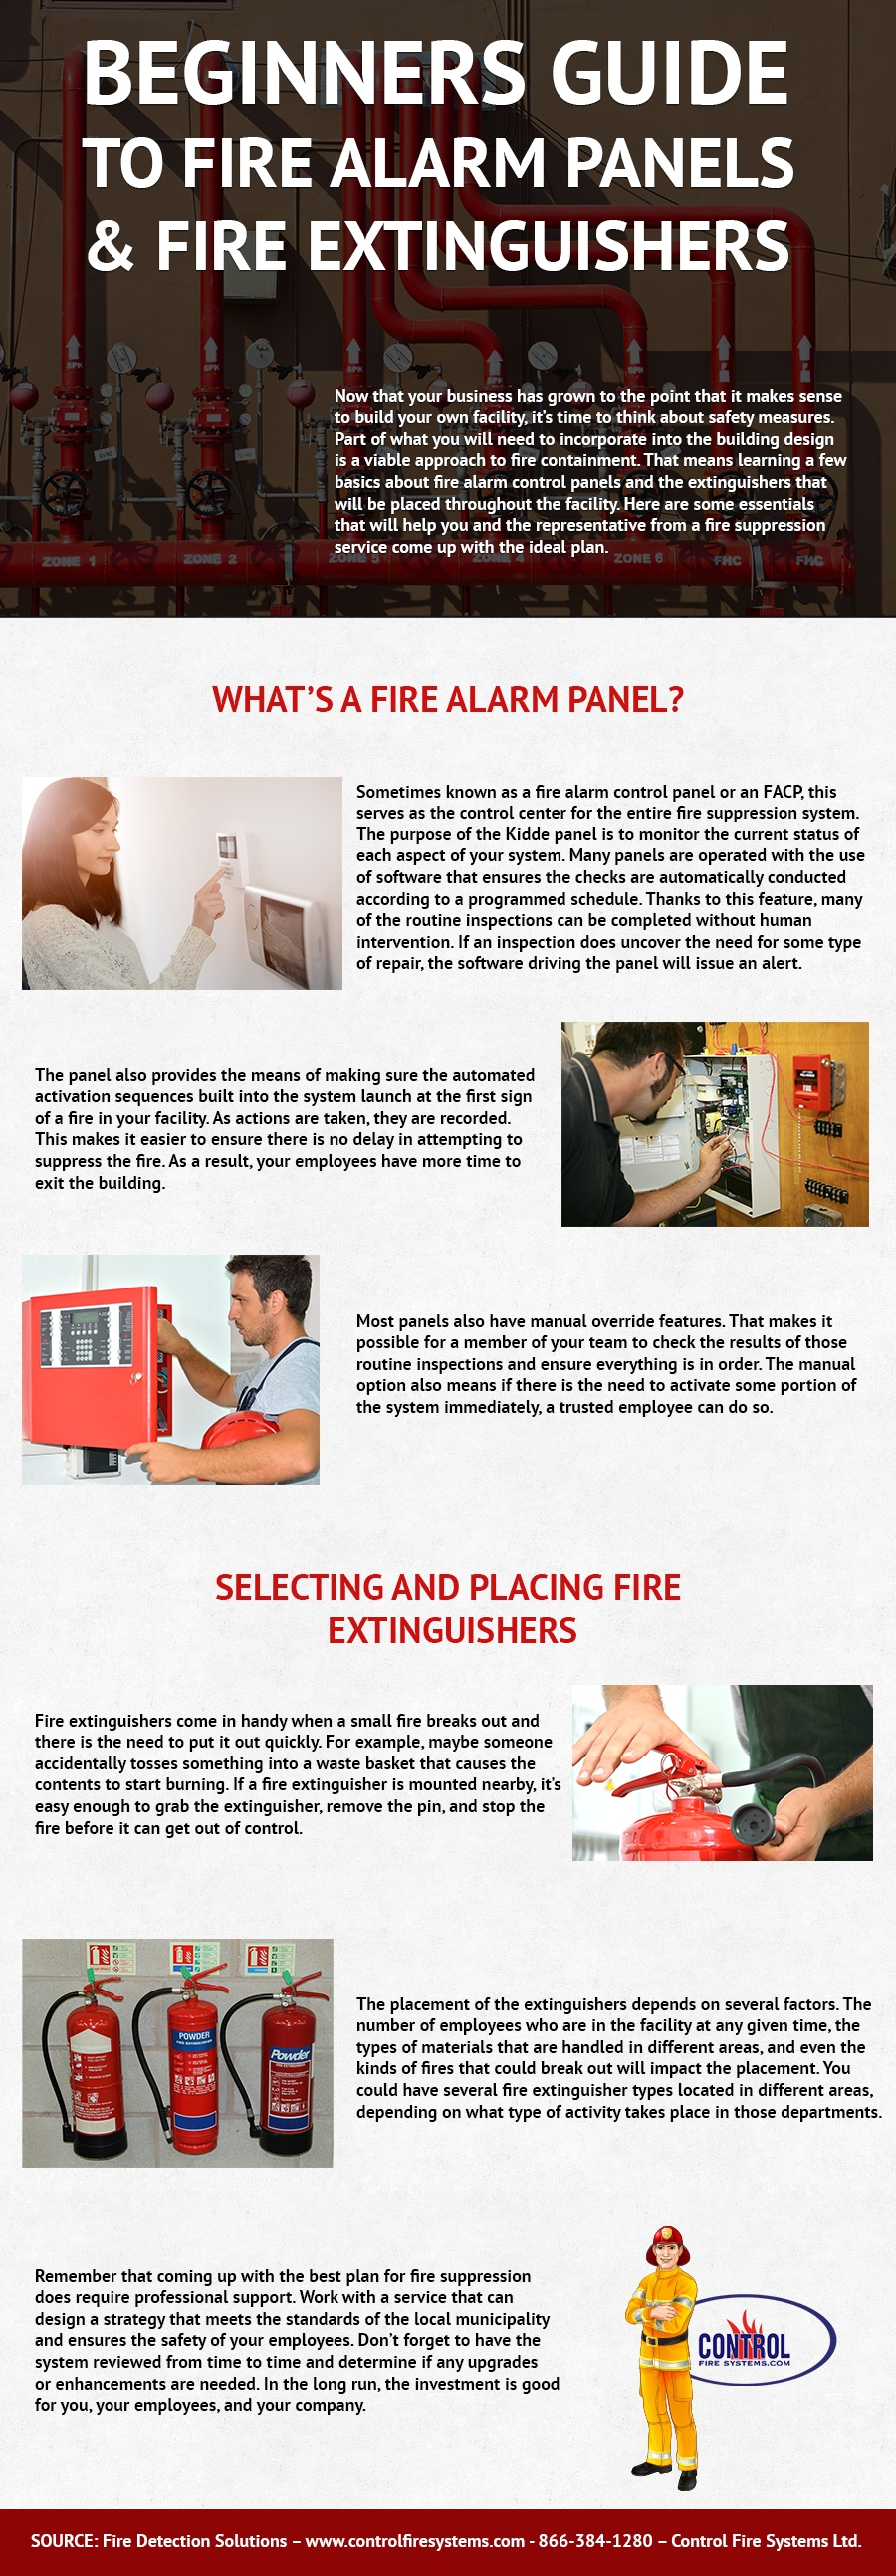 Beginners Guide to Fire Alarm Panels & Fire Extinguishers - Control Fire Systems Ifographic